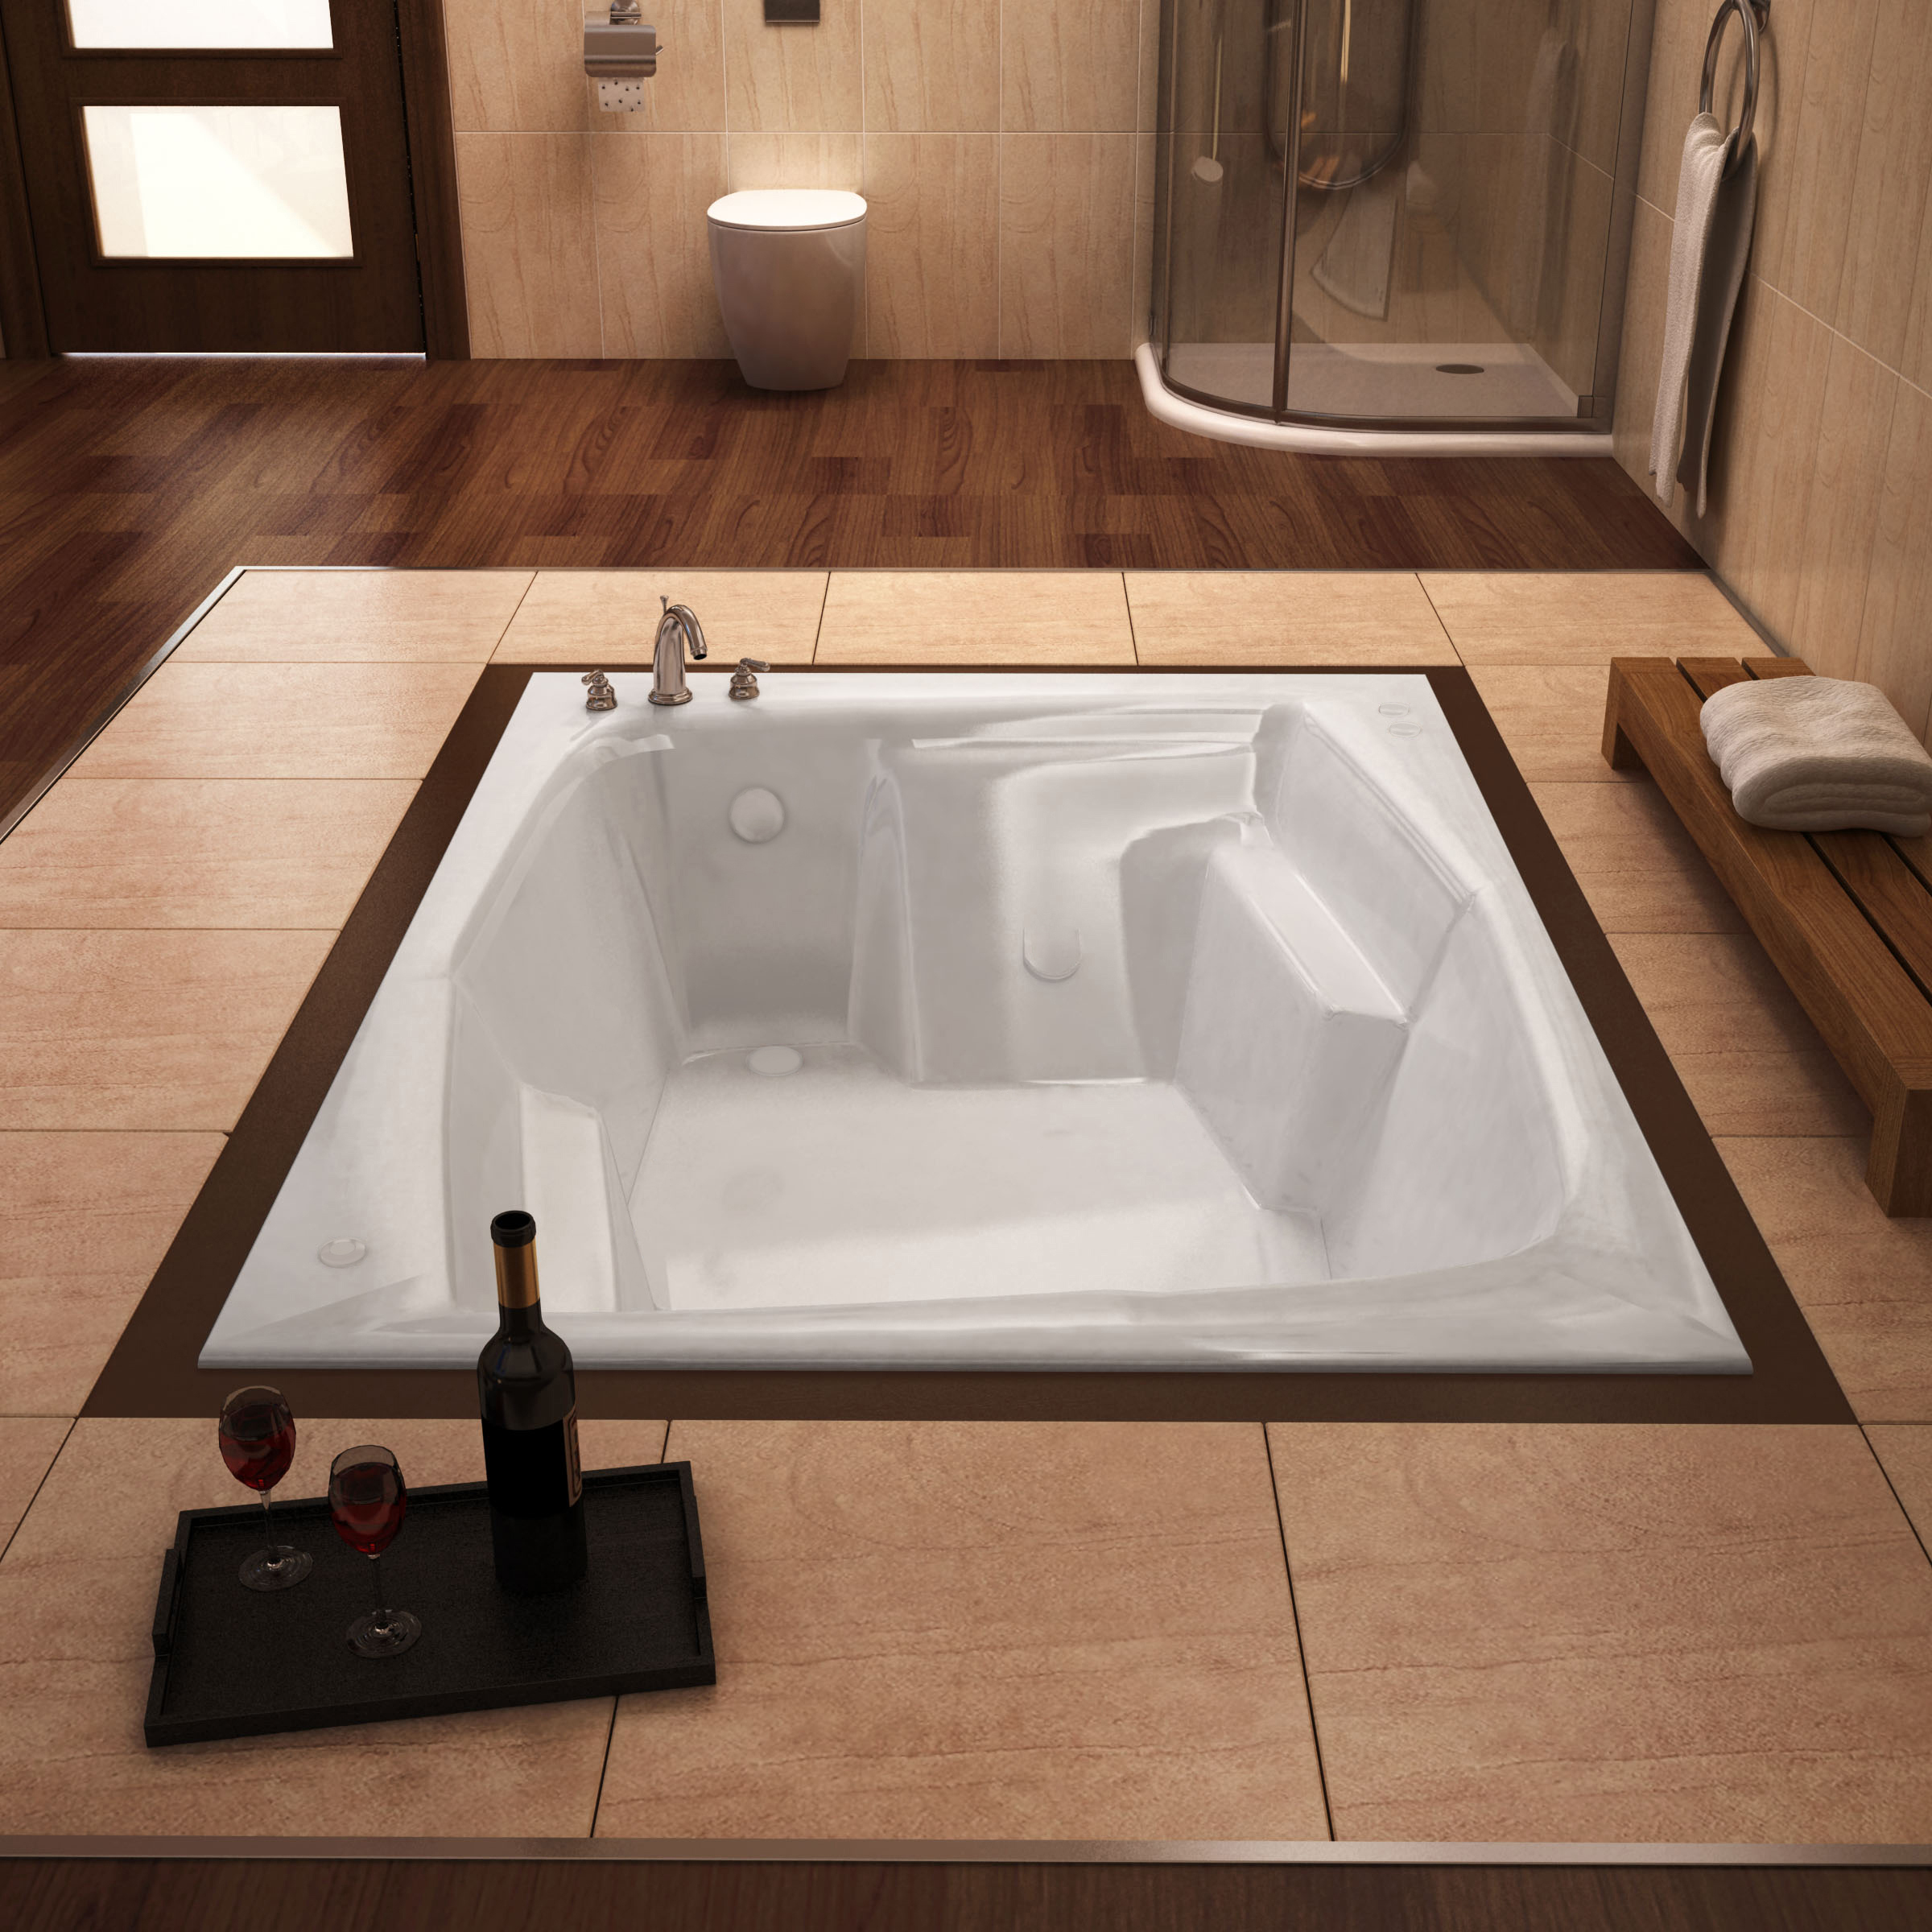 Venzi Capri 72 X 54 Rectangular Bathtub ...